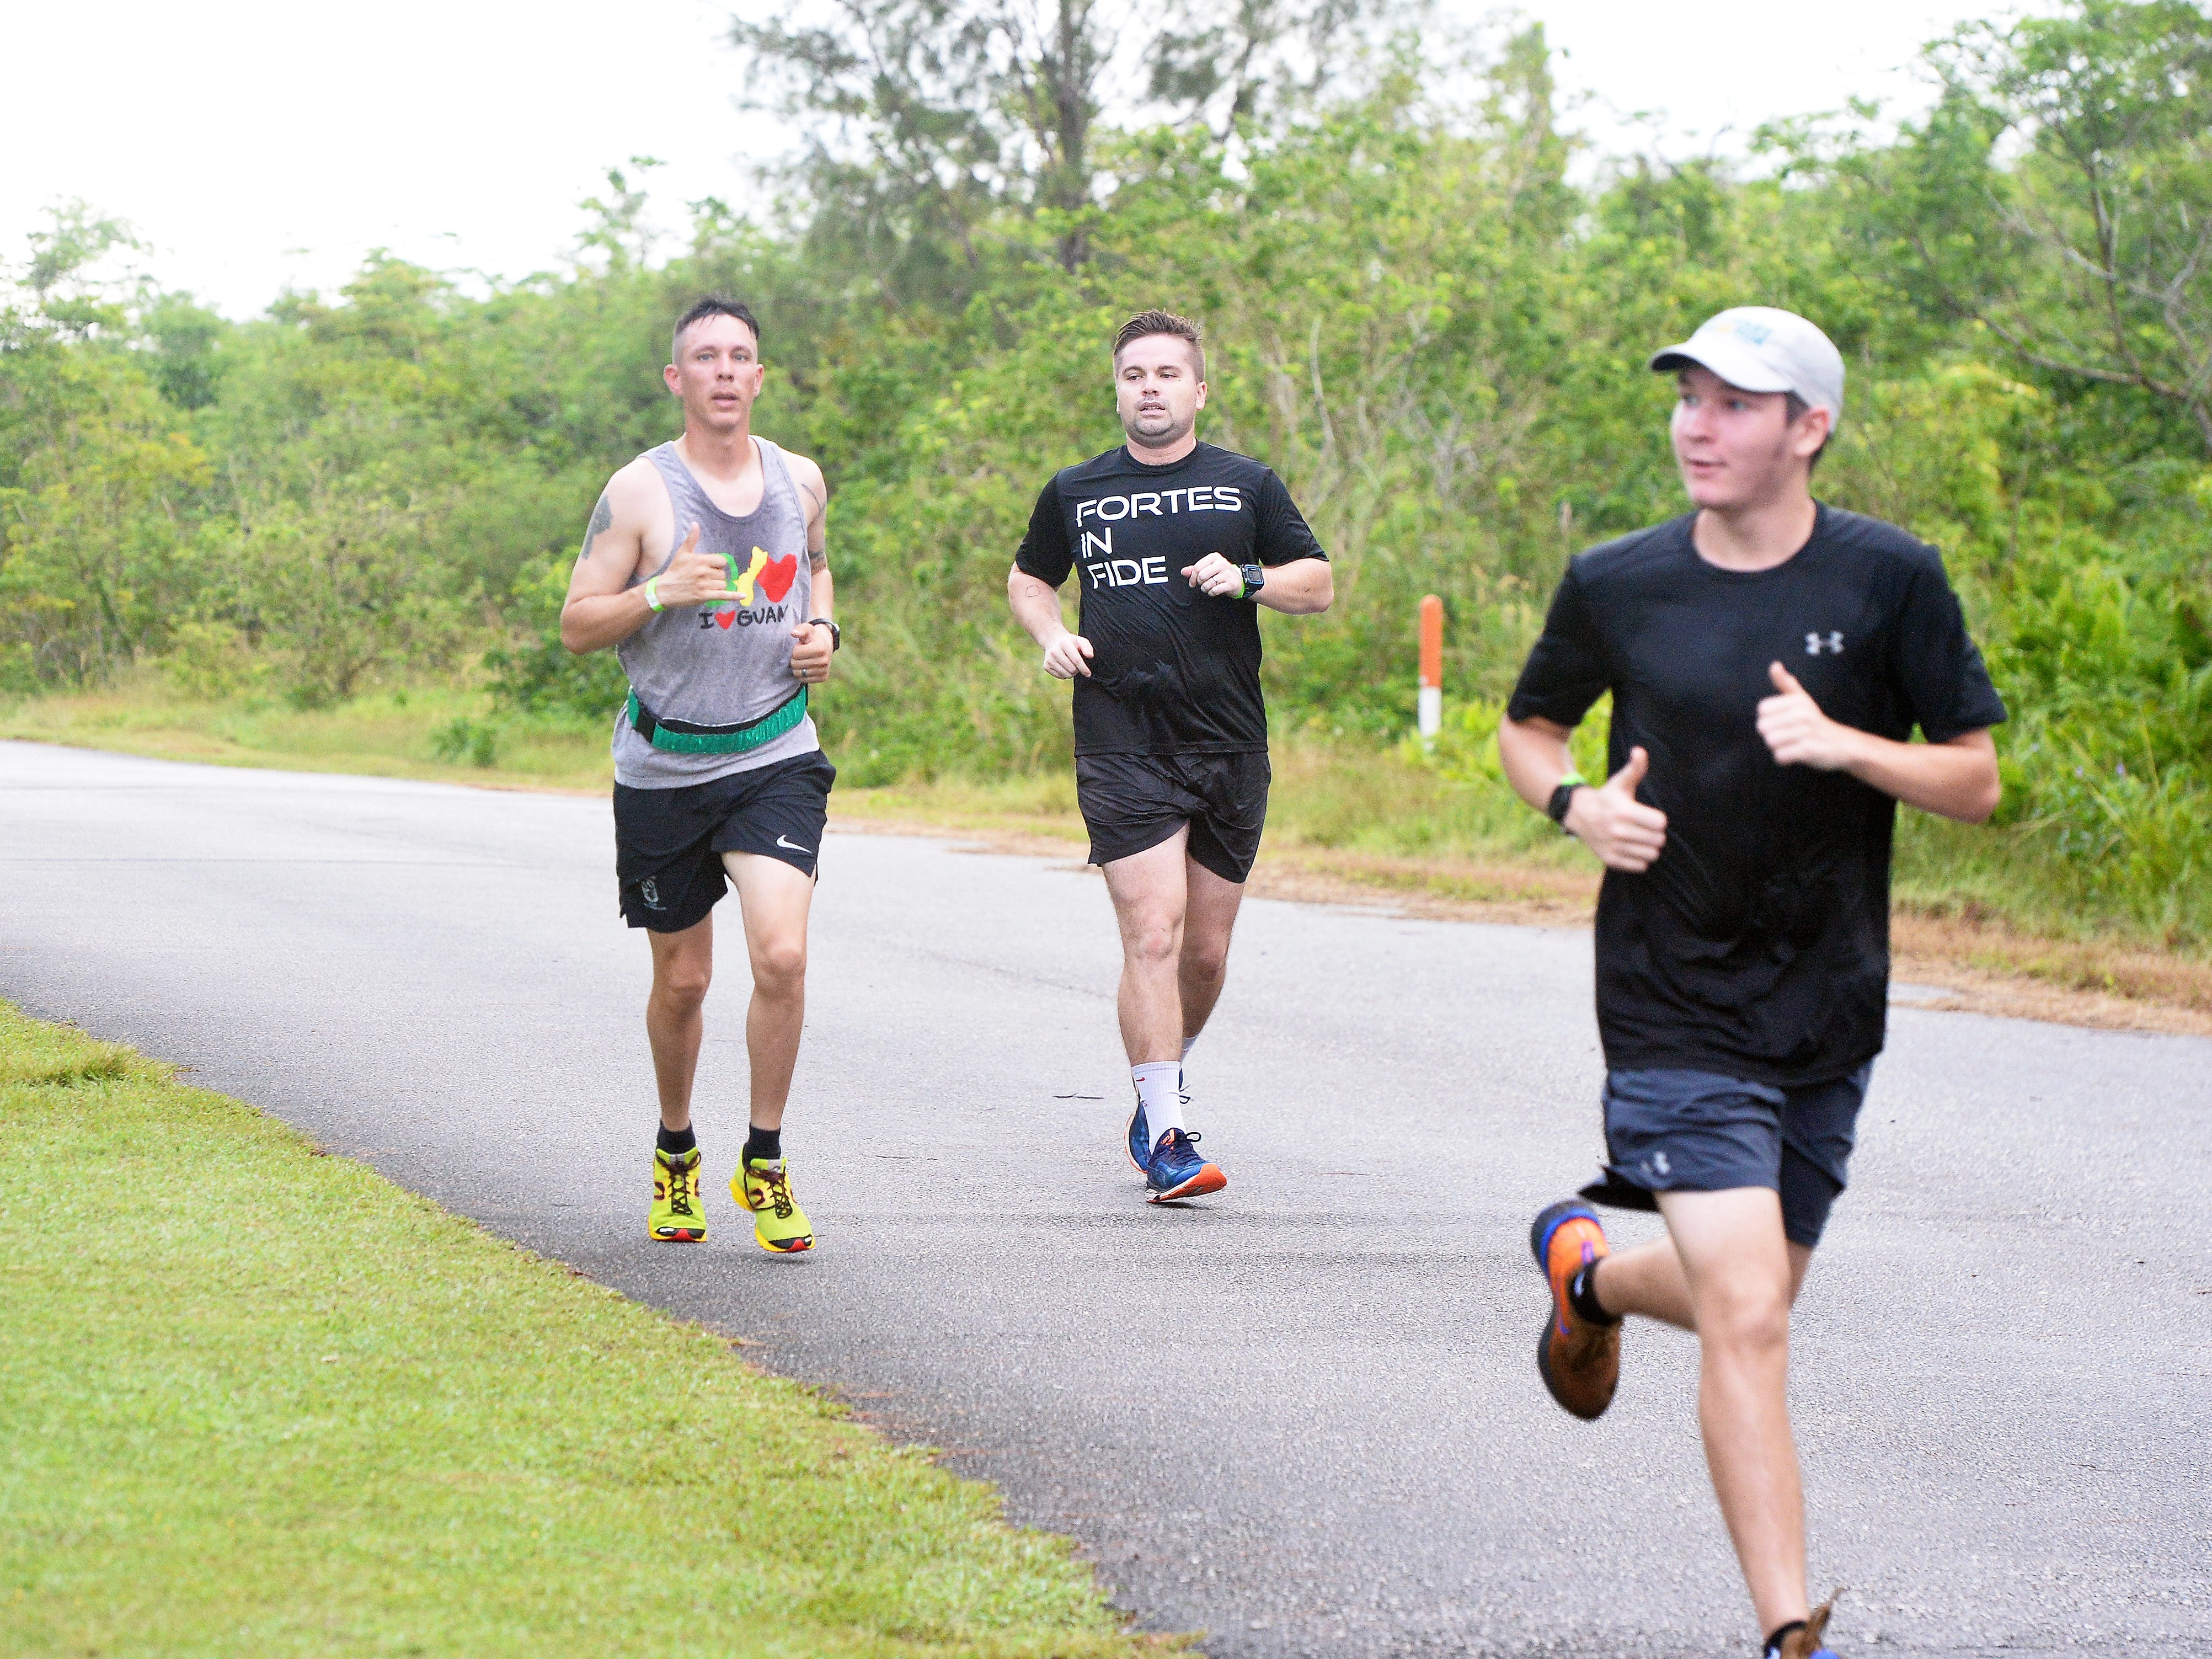 Scenes from the Guam Running Club's Annual Turkey Trot held Friday morning in the area leading up to Two Lover's Point. The race was postponed from Thanksgiving morning.